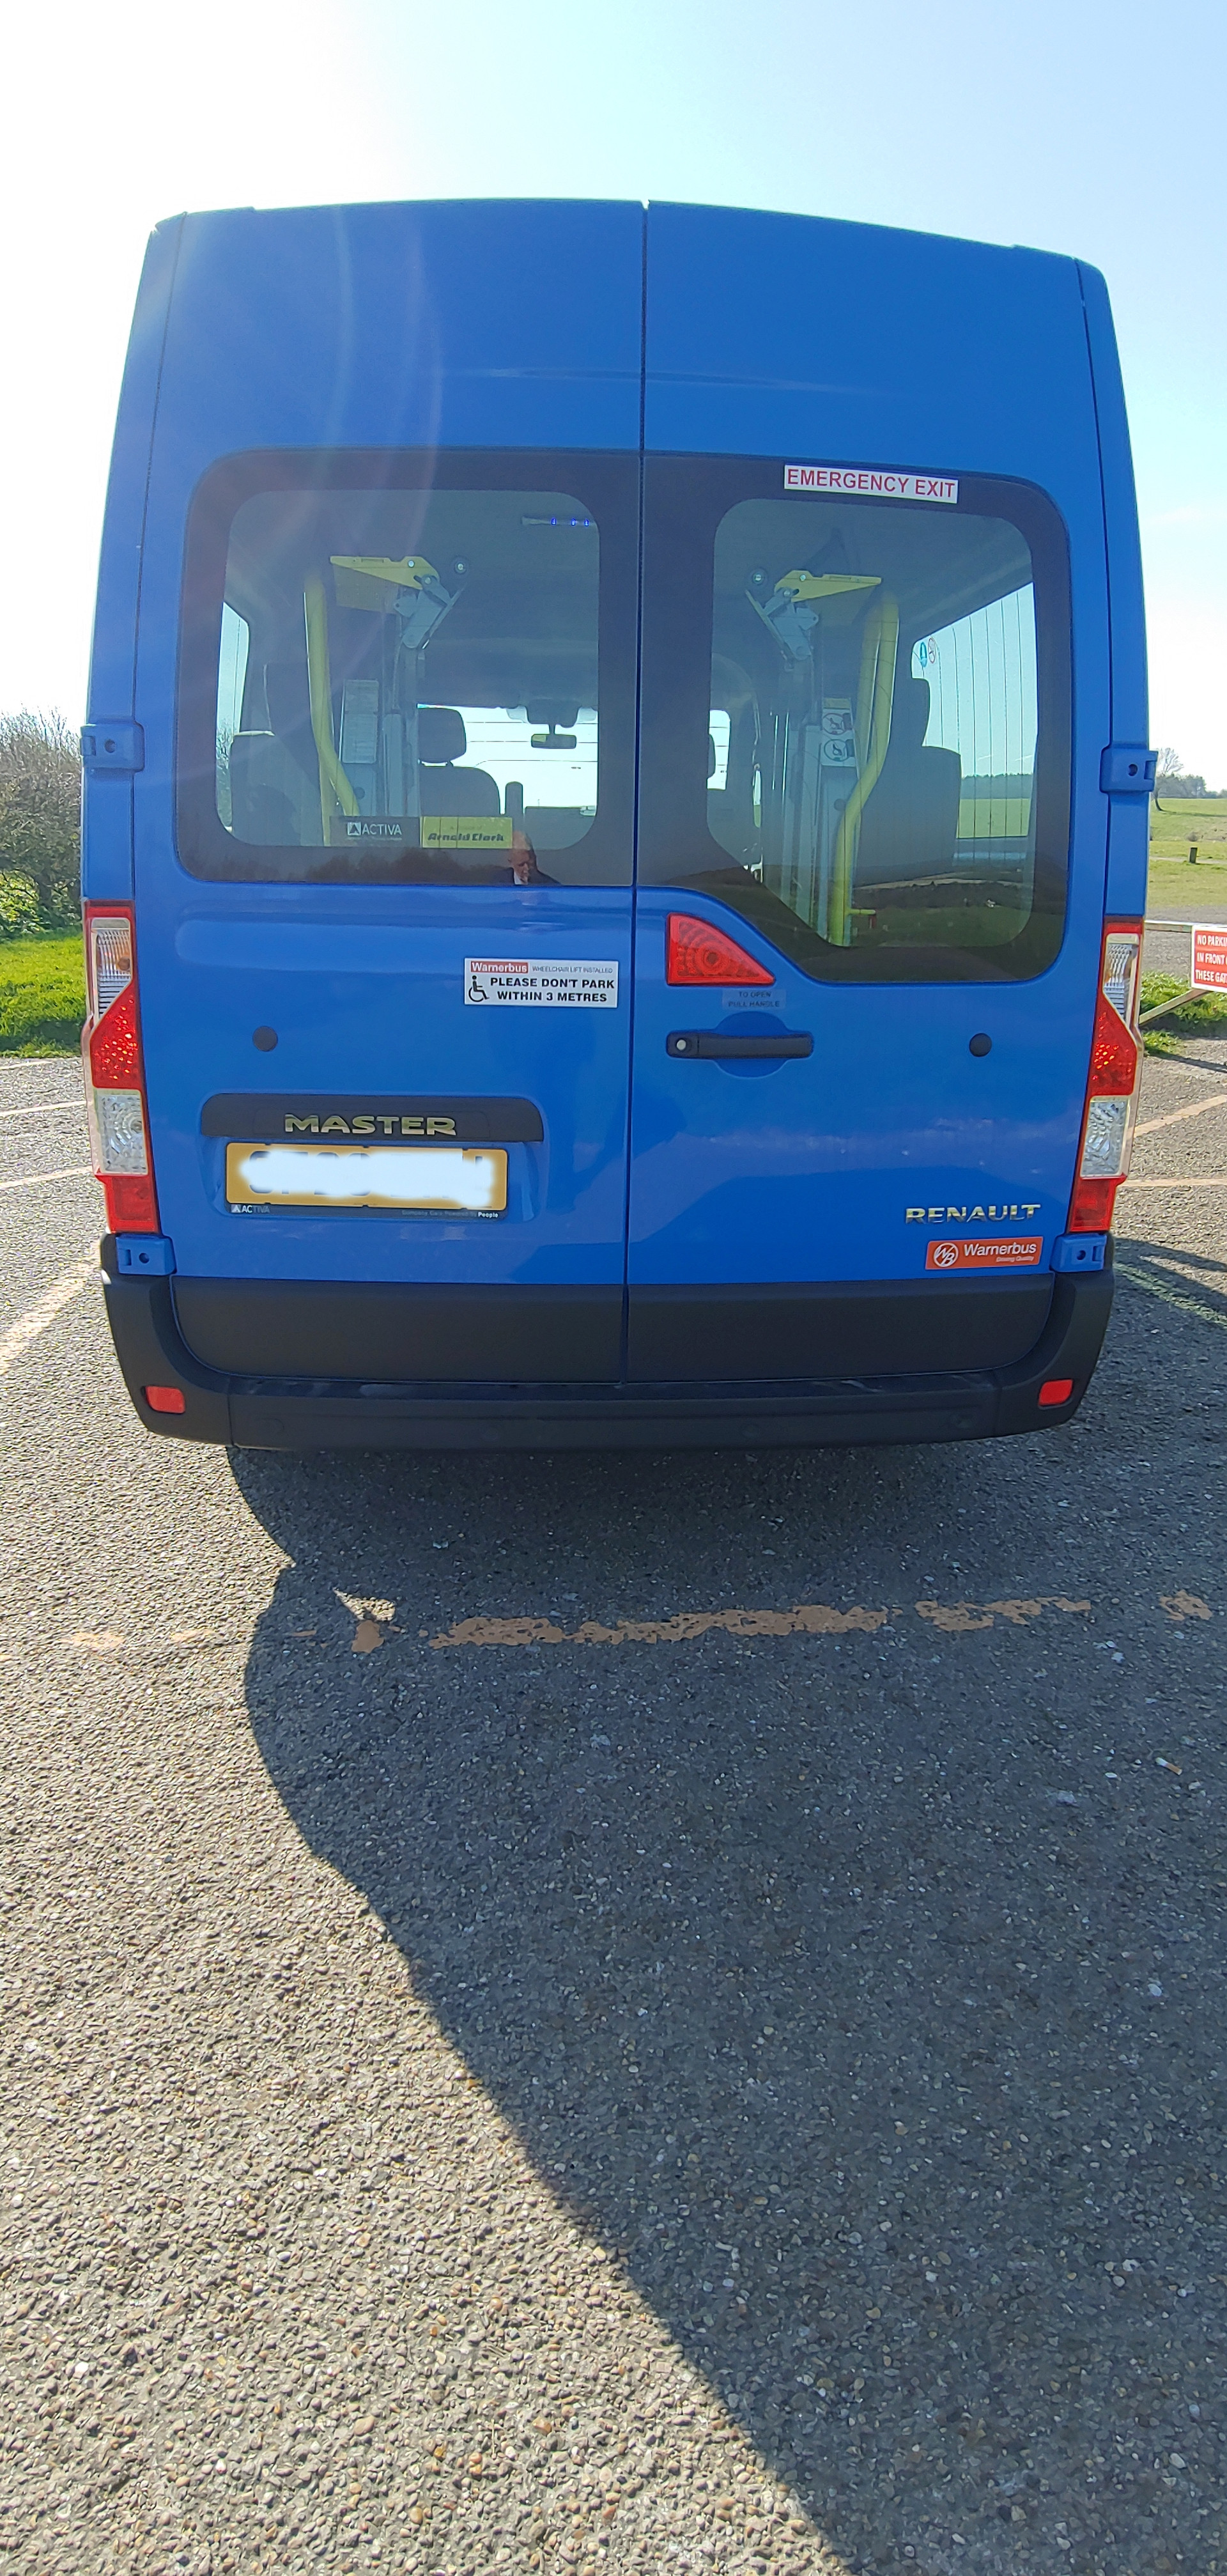 Rear view of Warnerbus converted Renault Master